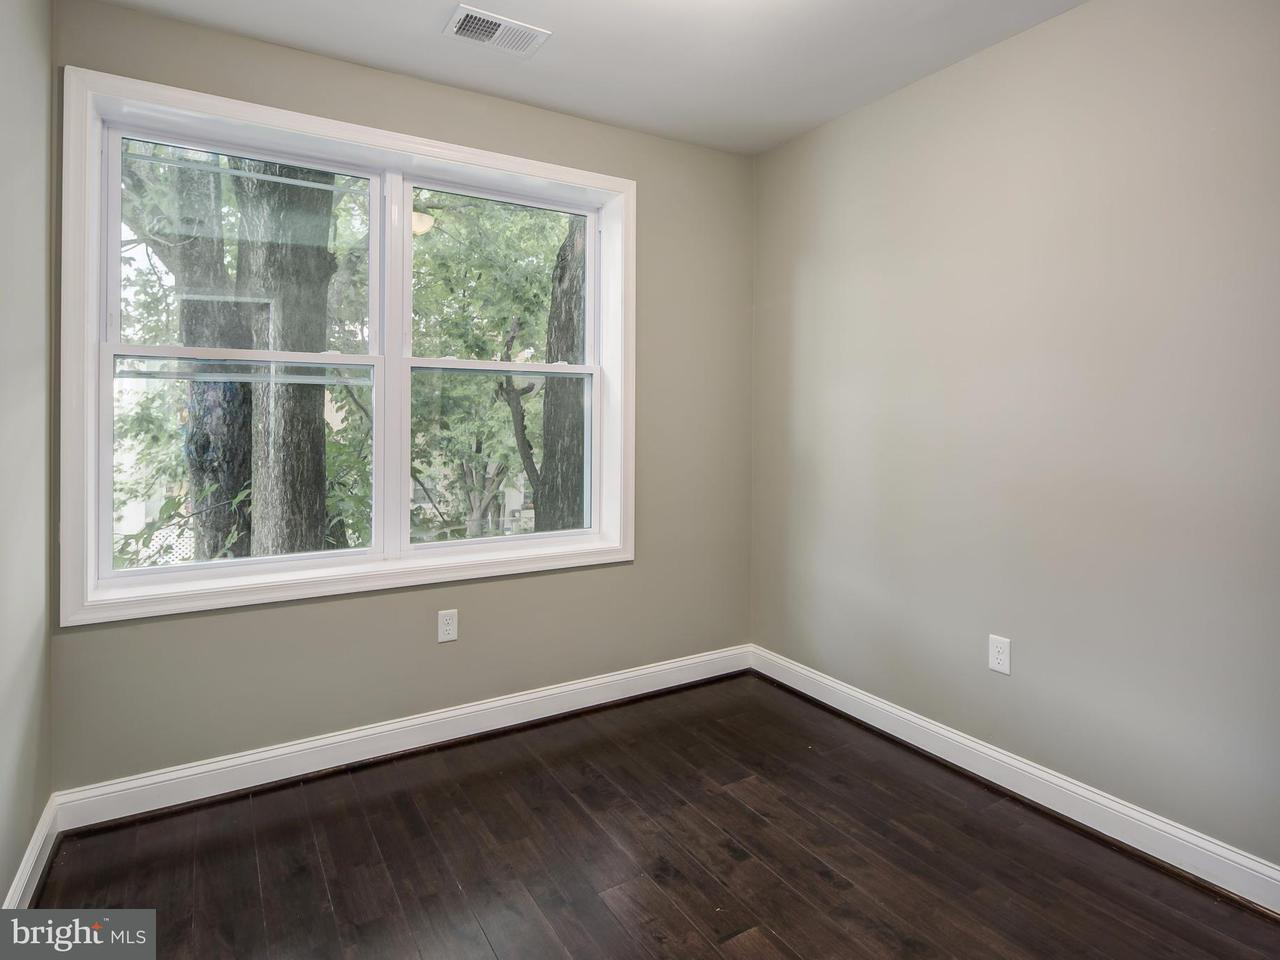 Additional photo for property listing at 1232 16th St NE #3  Washington, District Of Columbia 20002 United States